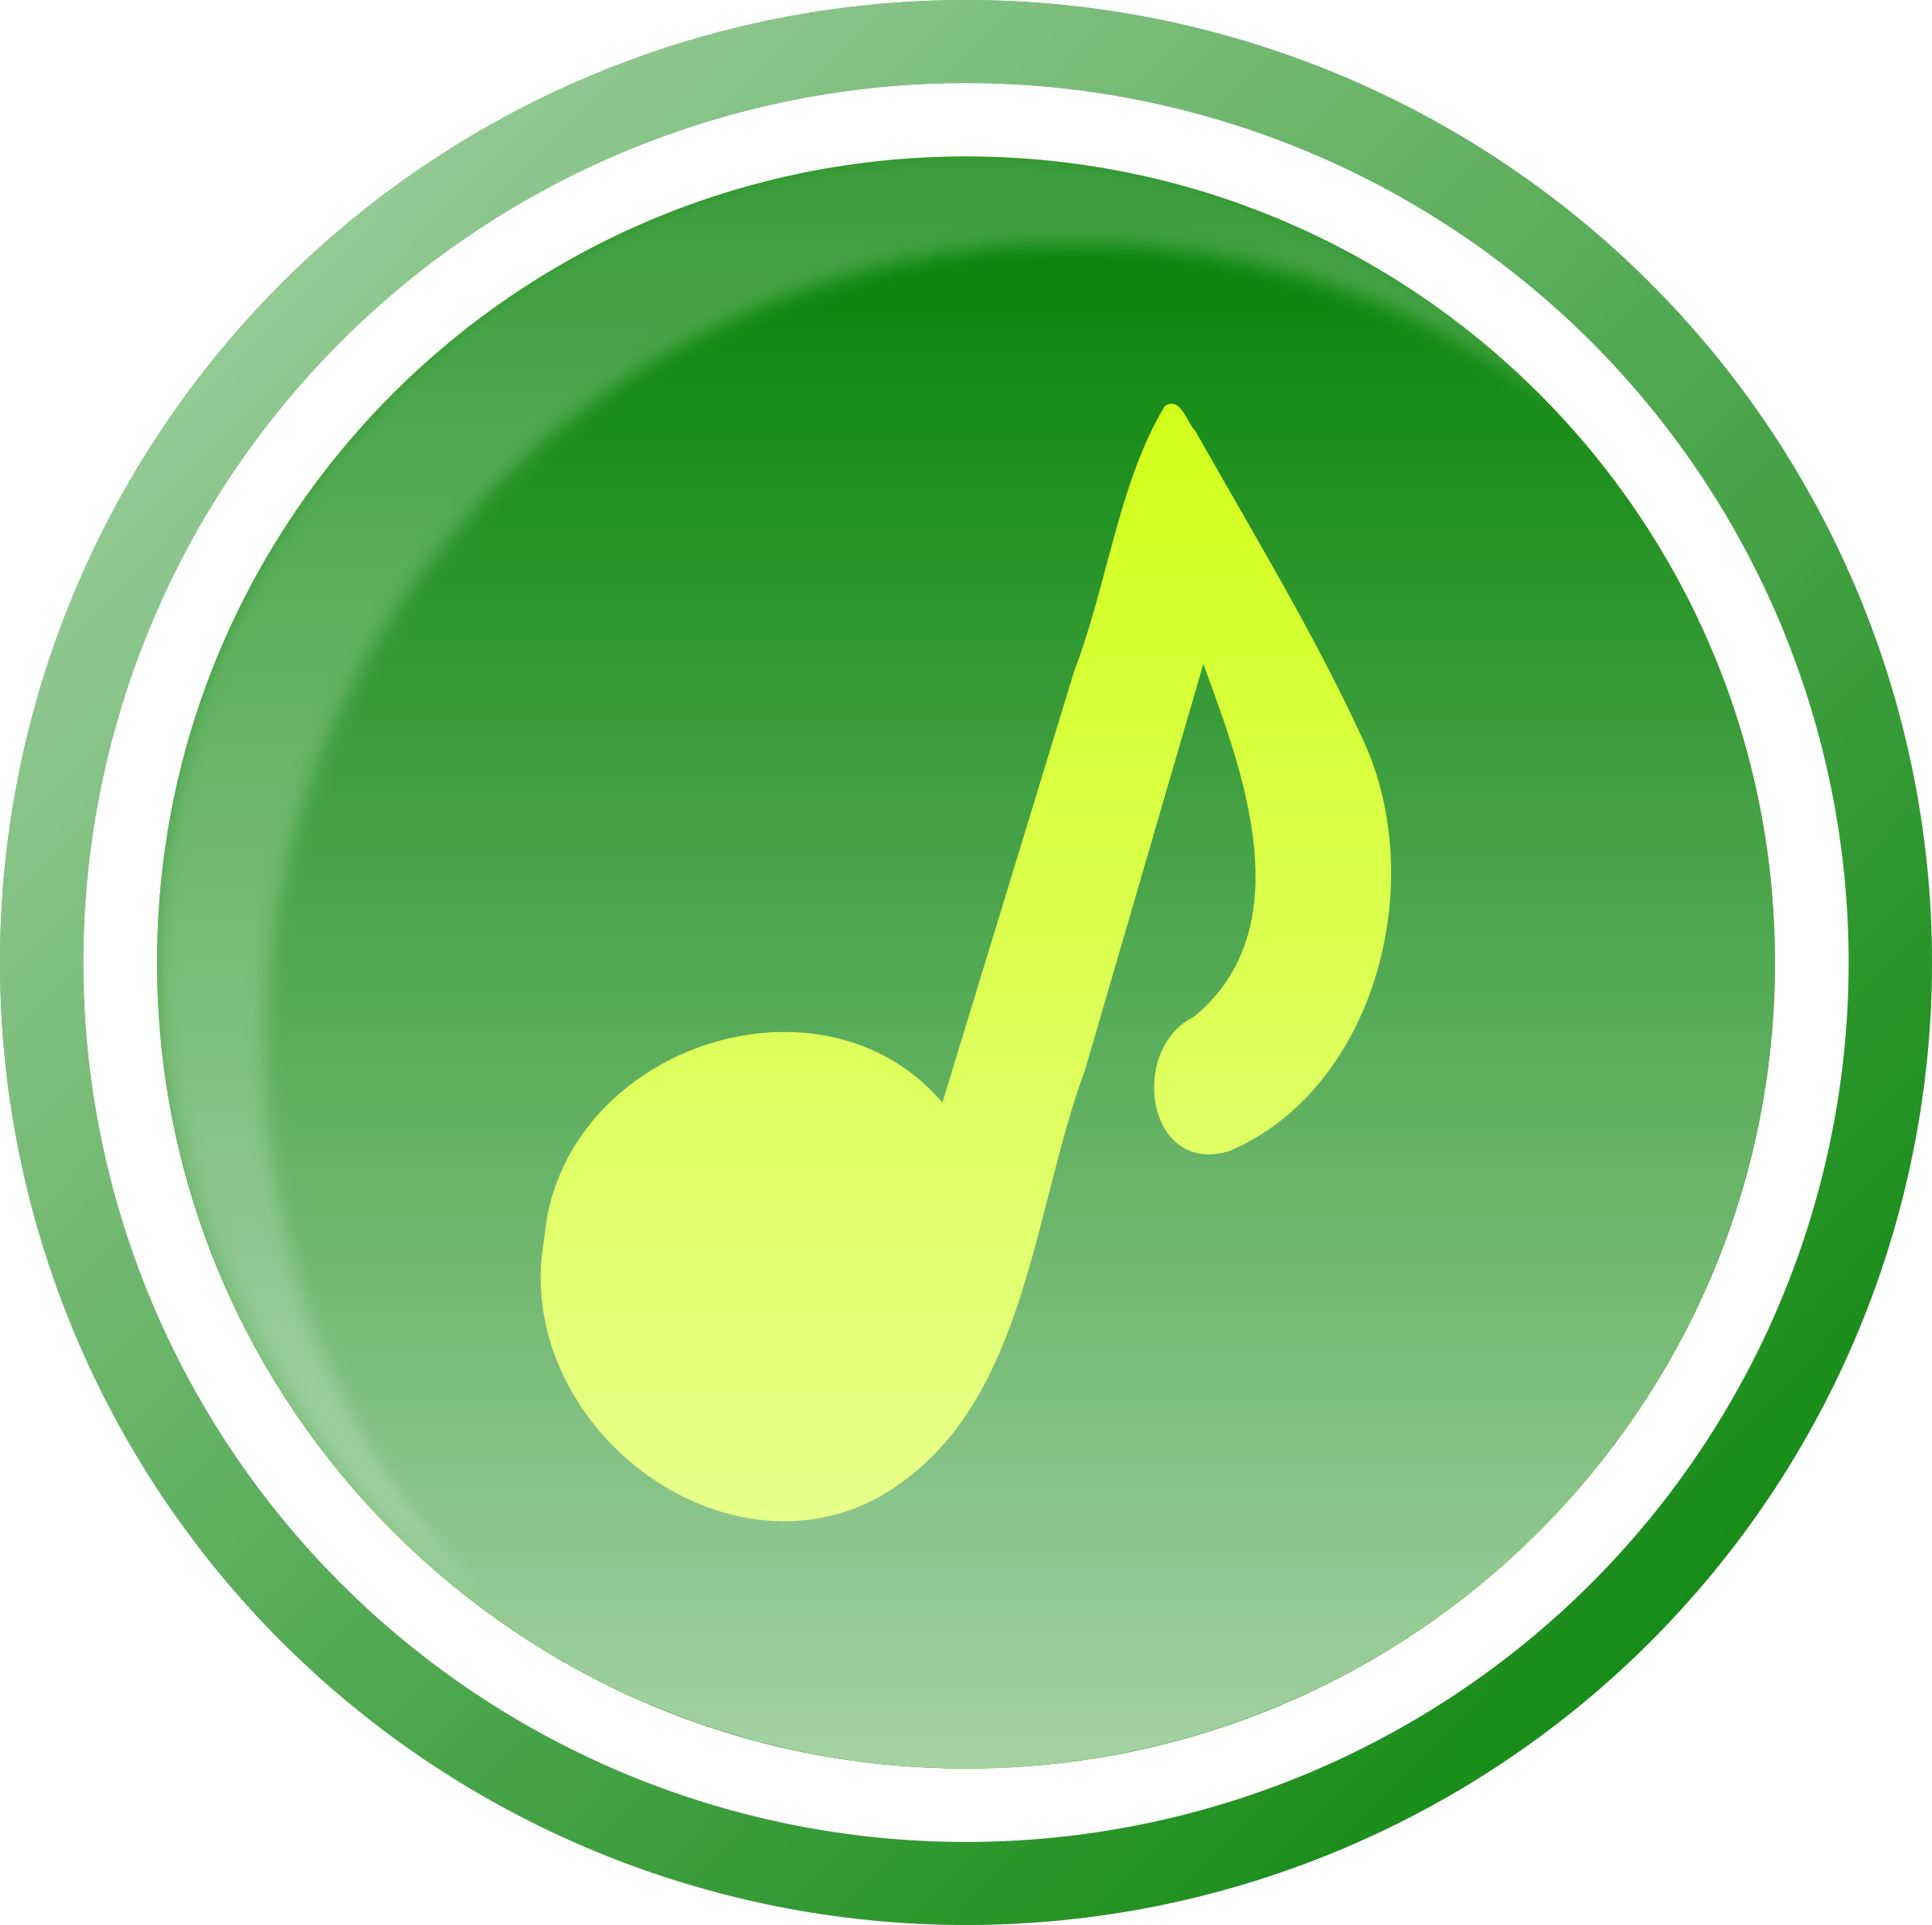 Music Icon-Green-1 by gsagri04